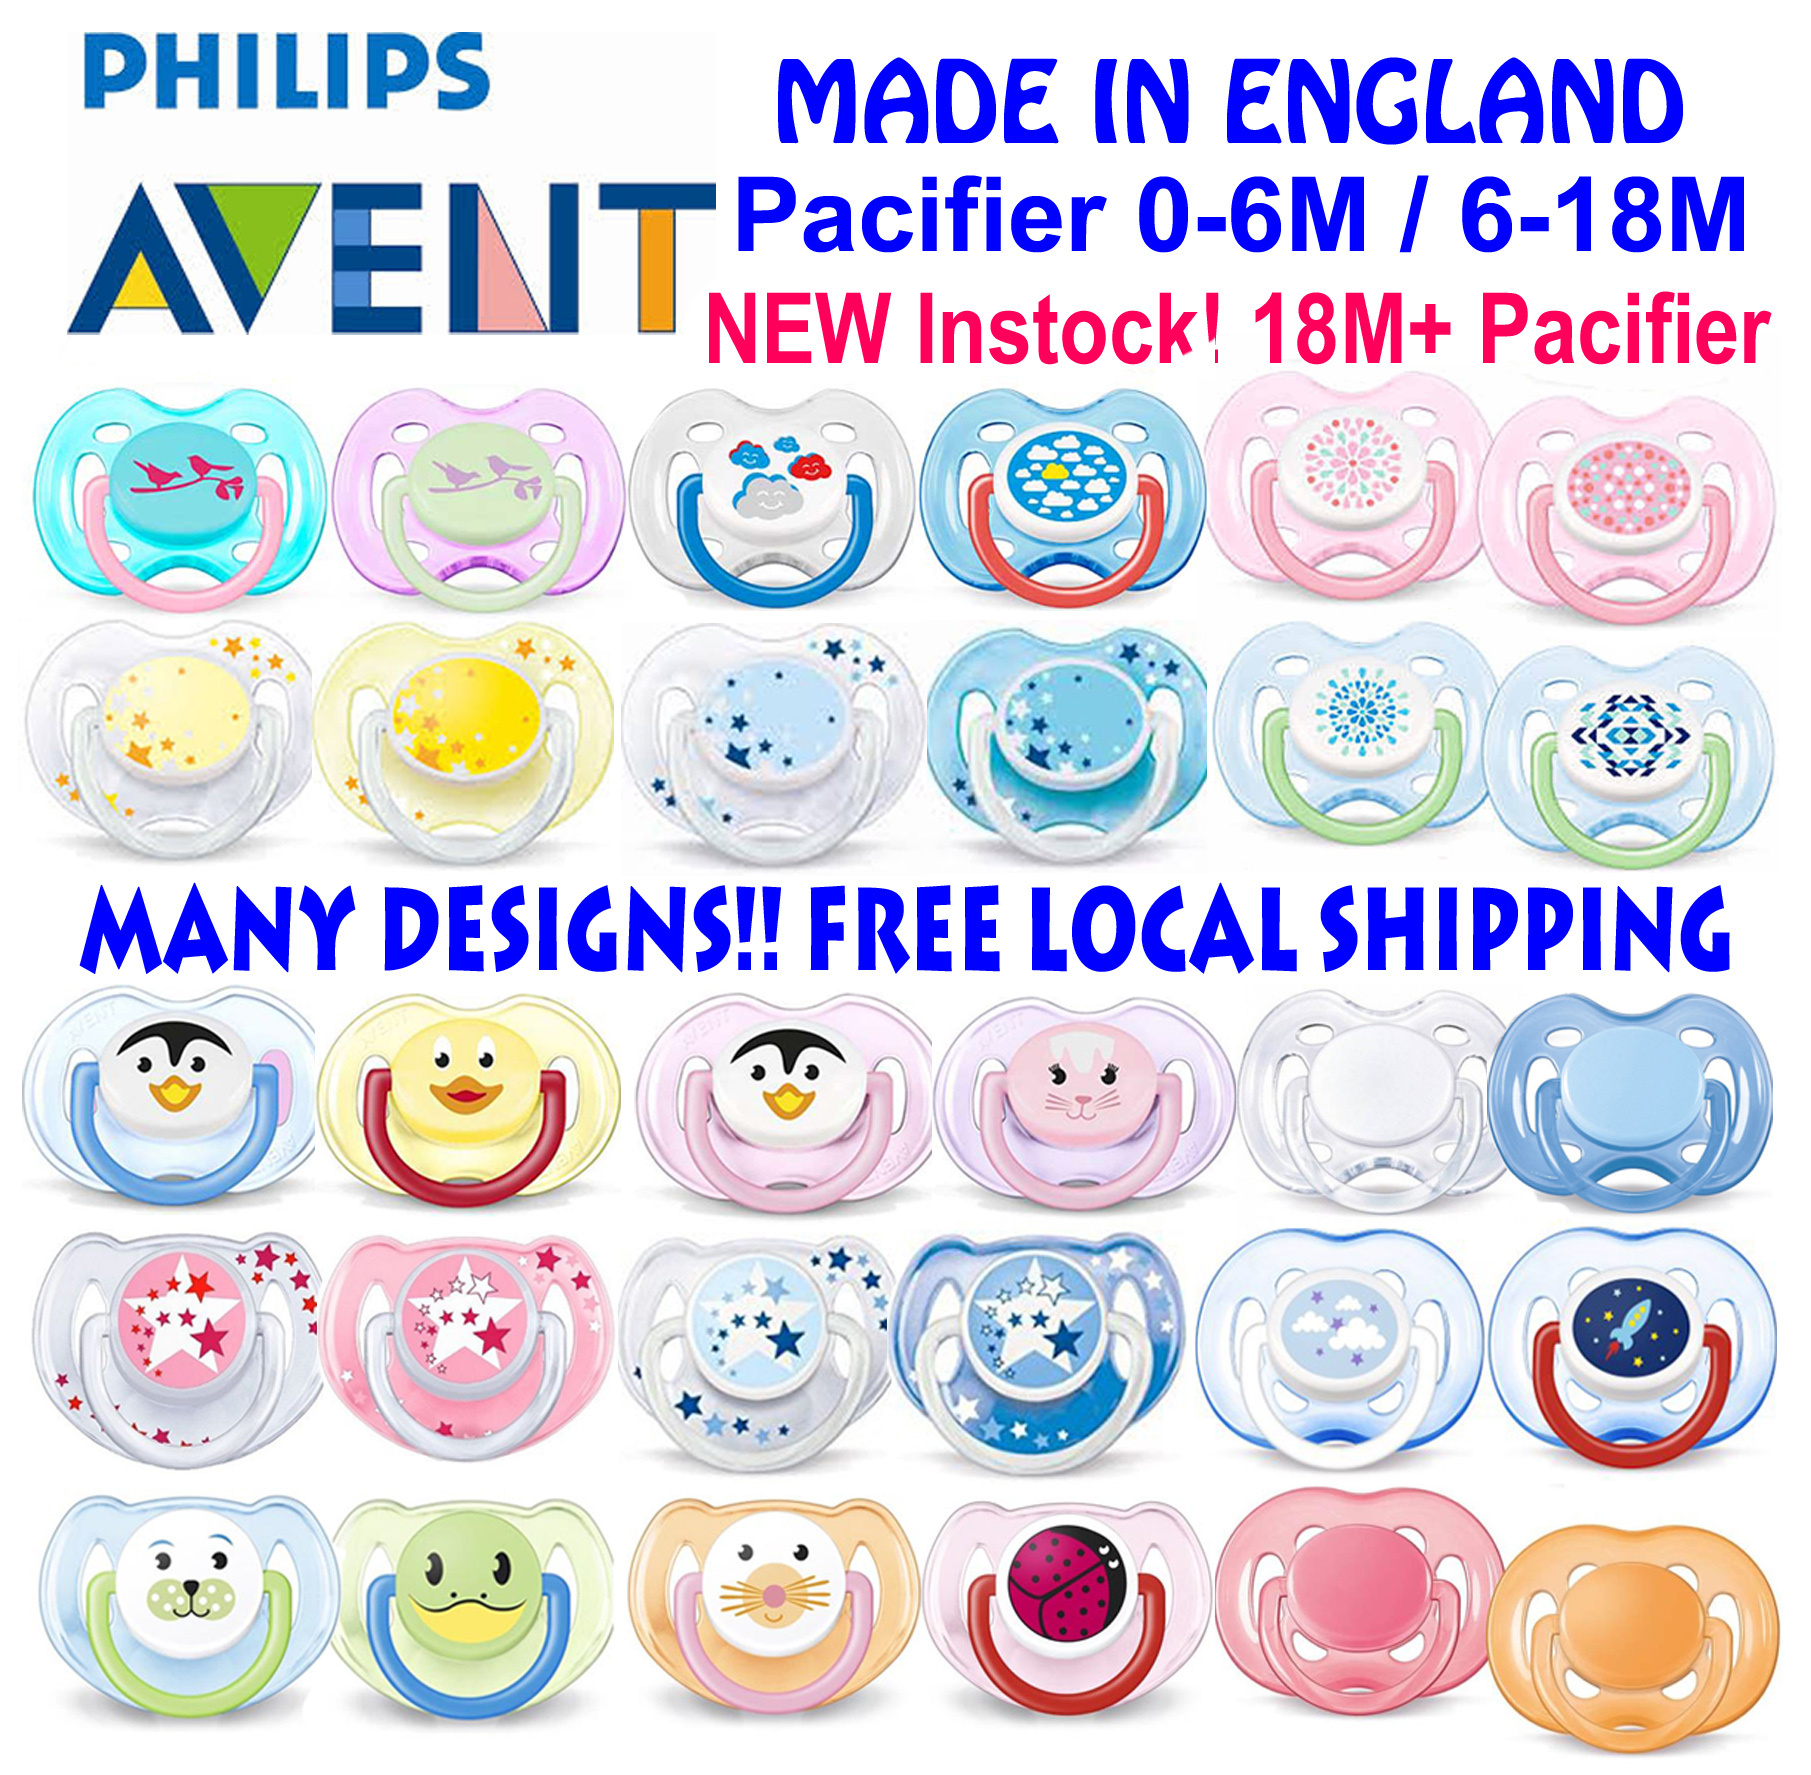 Qoo10 Avent Pacifier Baby Maternity Pigeon Bpa Free Feeding Set Mini 6m Fit To Viewer